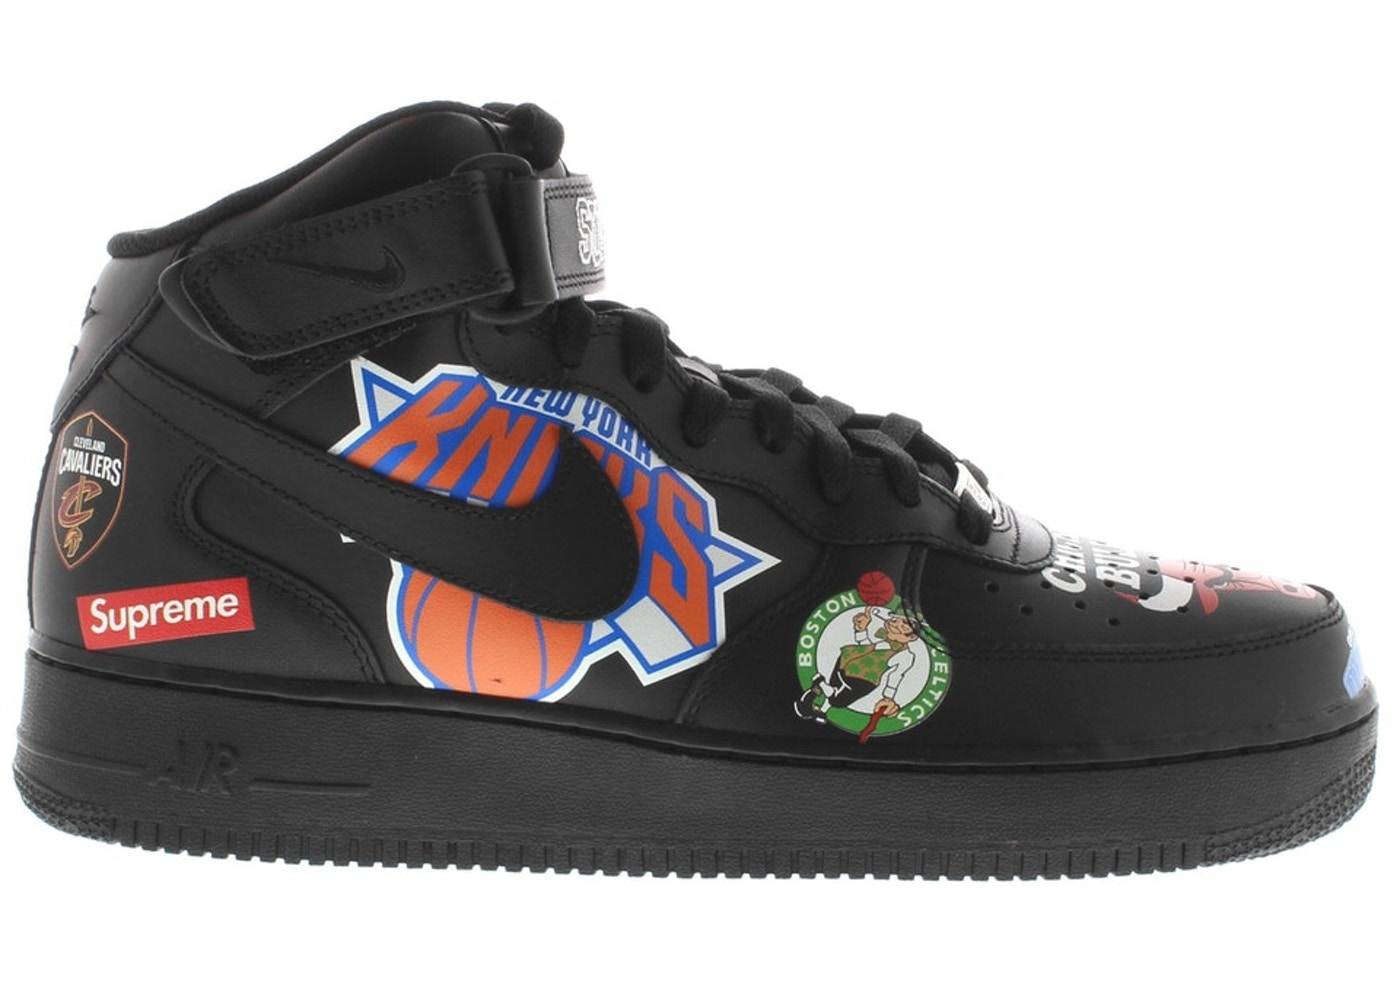 on sale f2a36 d18e3 Air Force 1 Mid Supreme NBA Black